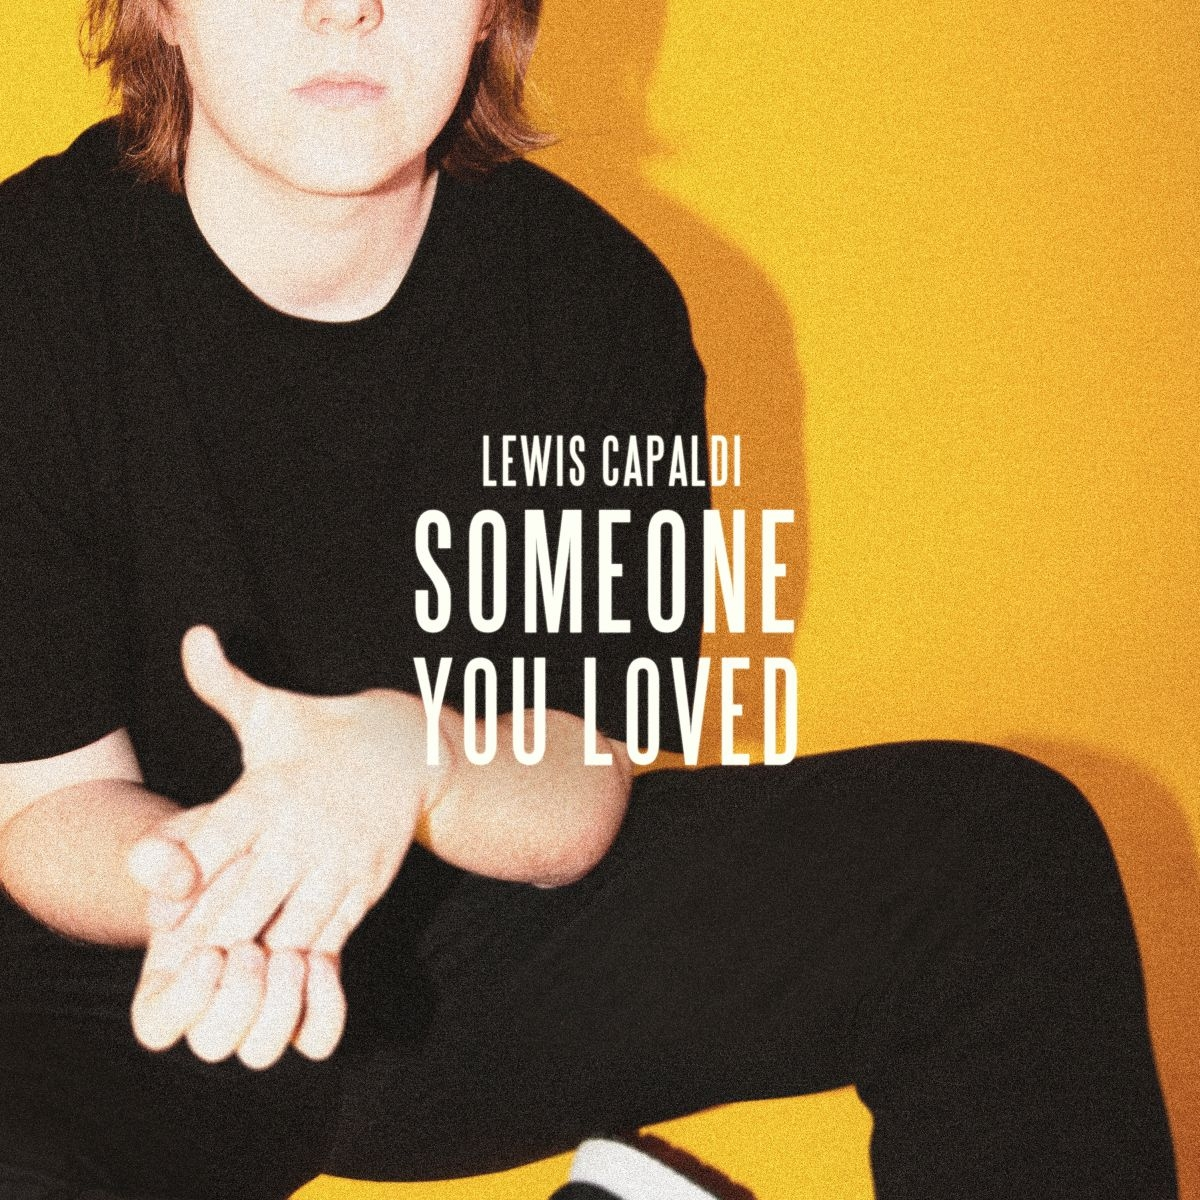 LEWIS CAPALDI - Someone You Loved